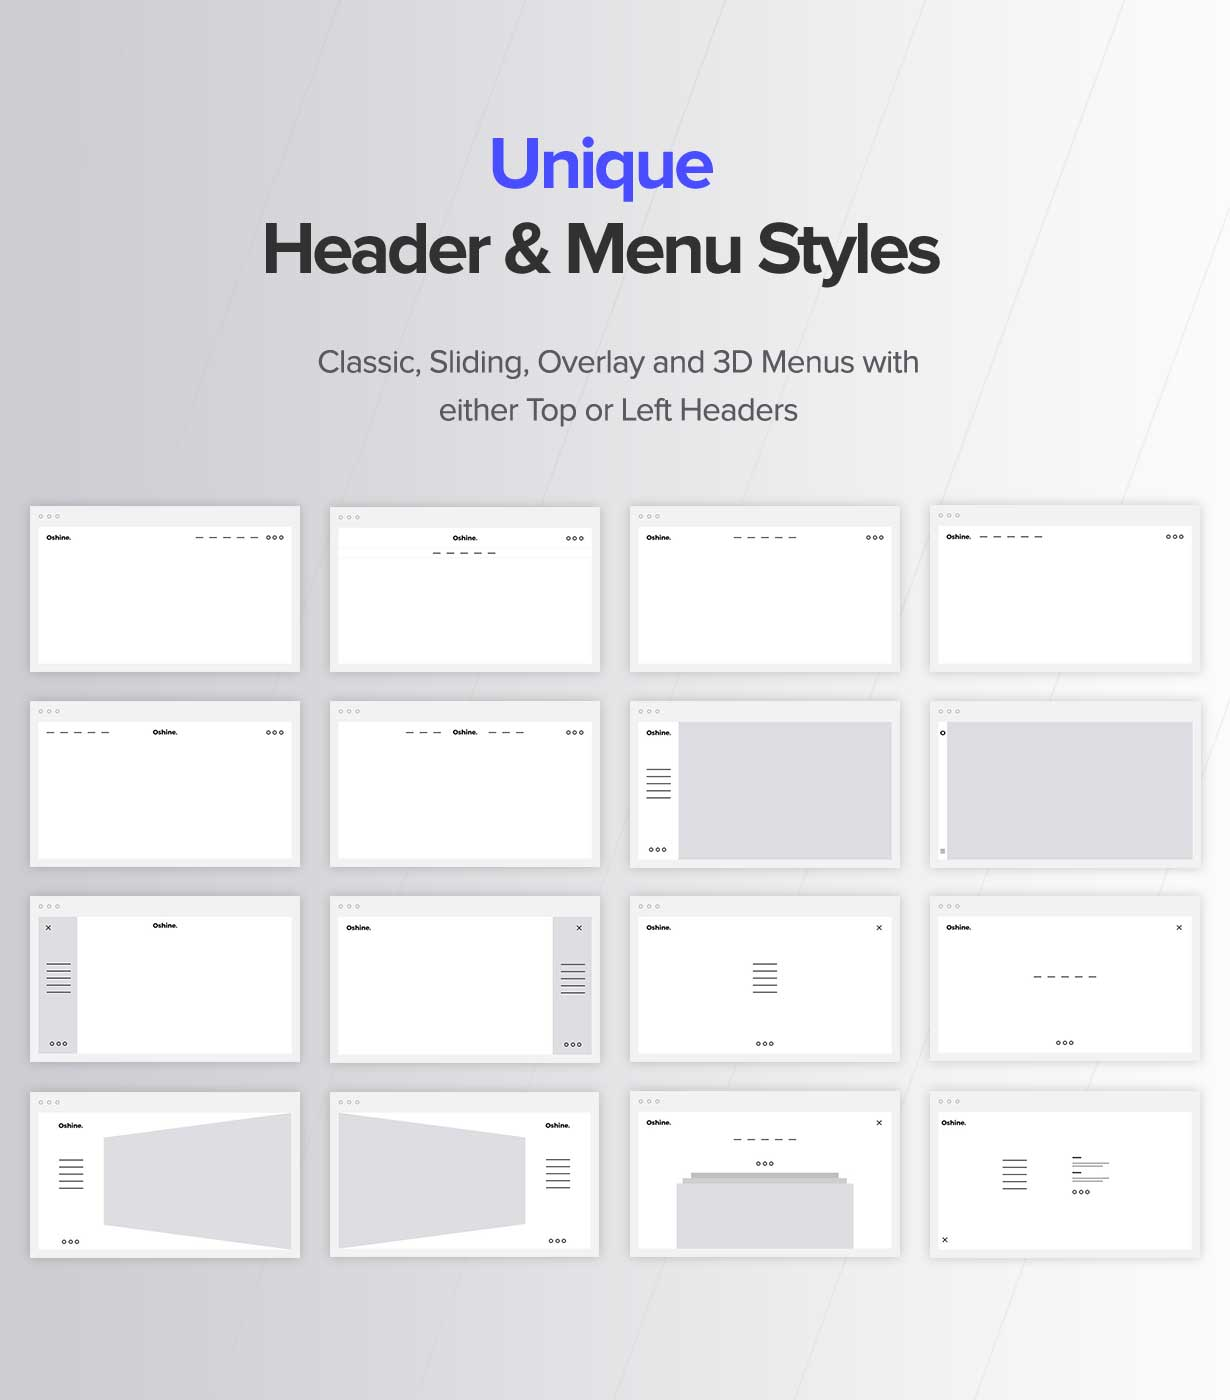 Unique Header & Menu Styles